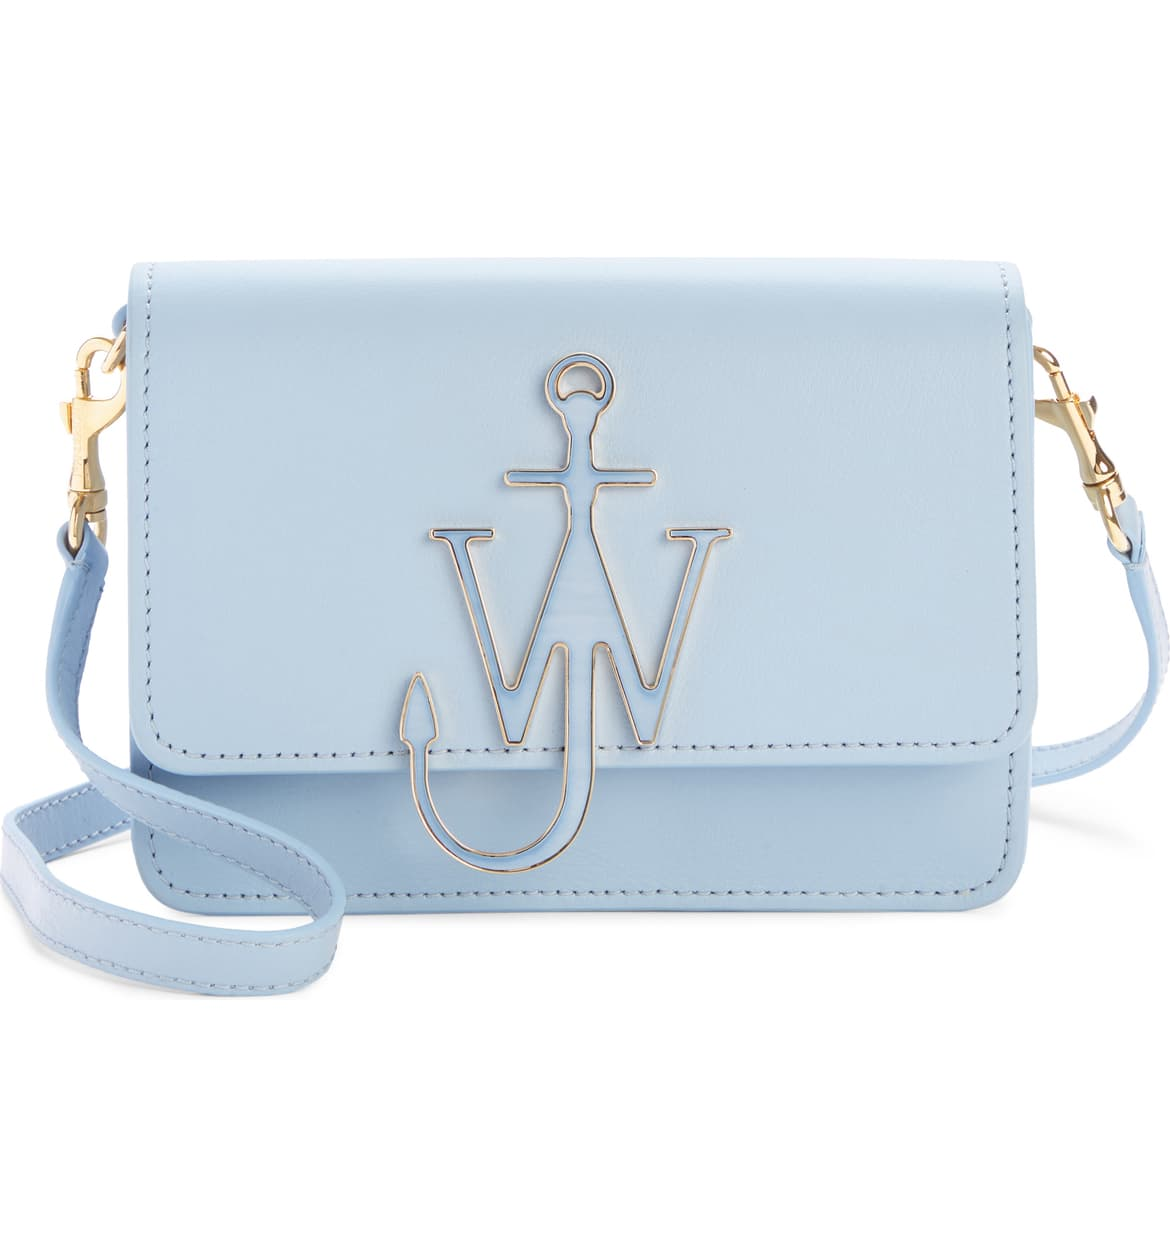 JW Anderson logo crossbody bag in pastel blue nordstrom